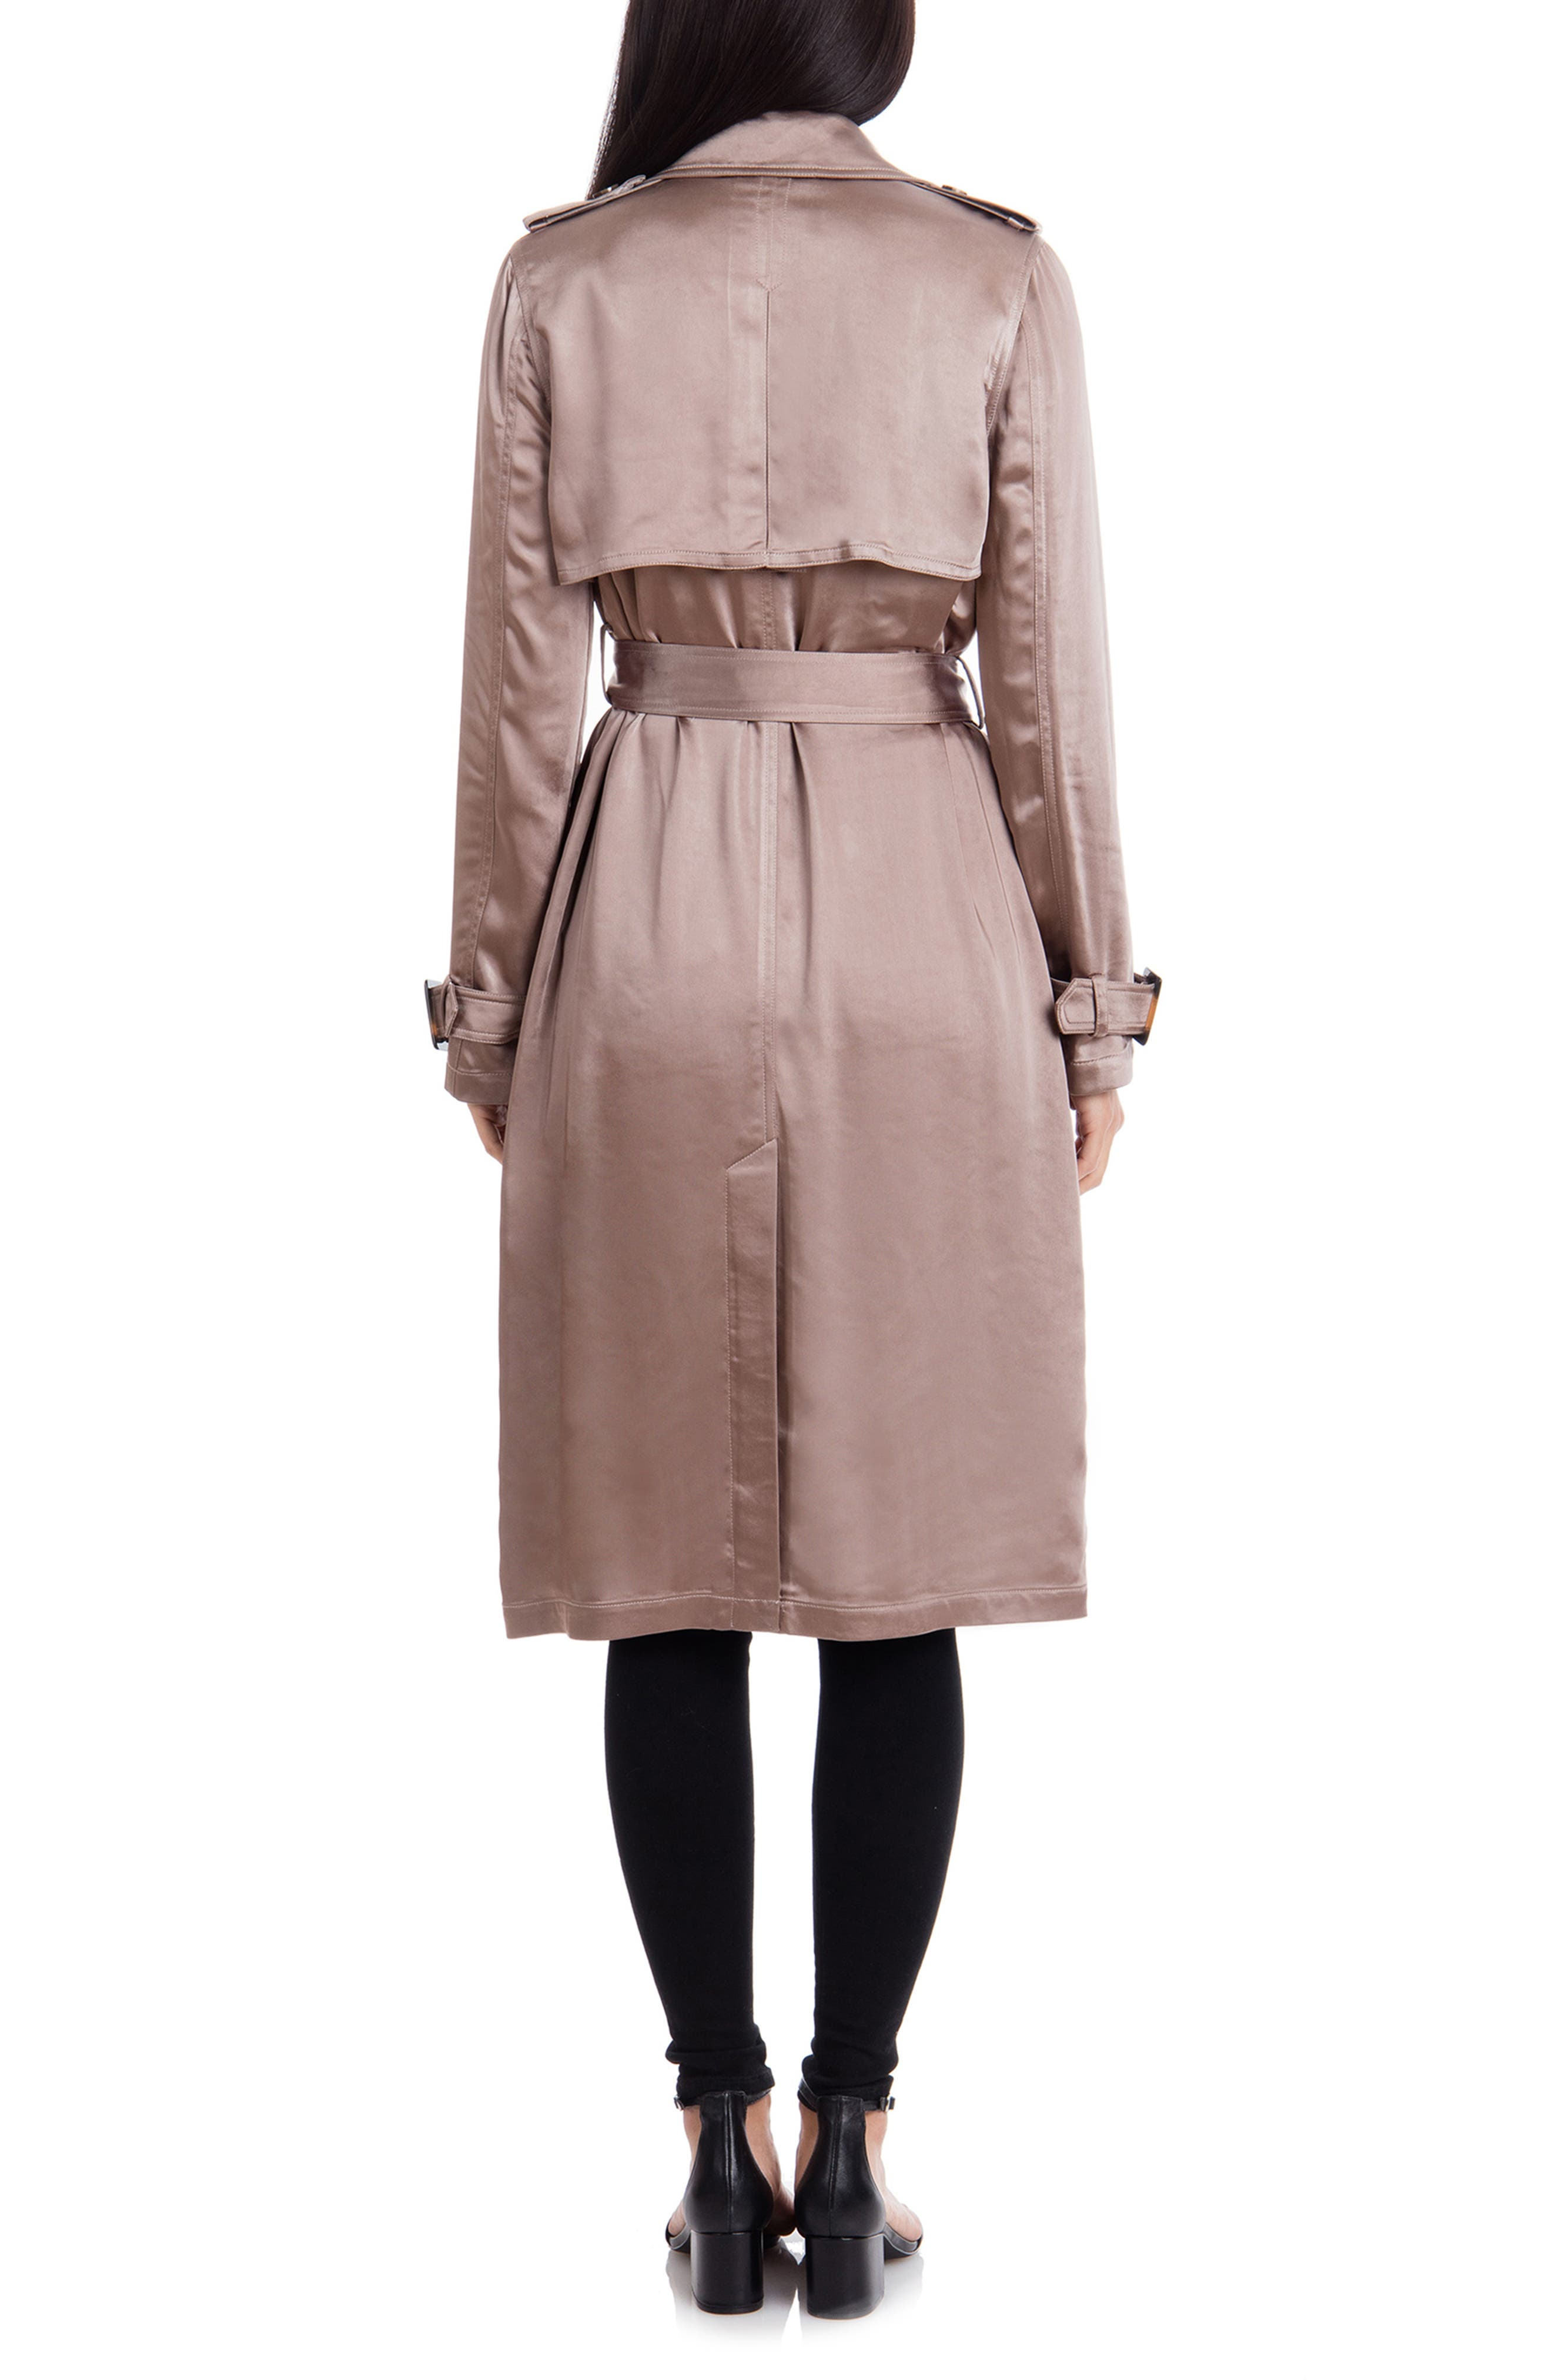 BADGLEY MISCHKA COLLECTION,                             Badgley Mischka Double Breasted Satin Trench Coat,                             Alternate thumbnail 2, color,                             TAUPE